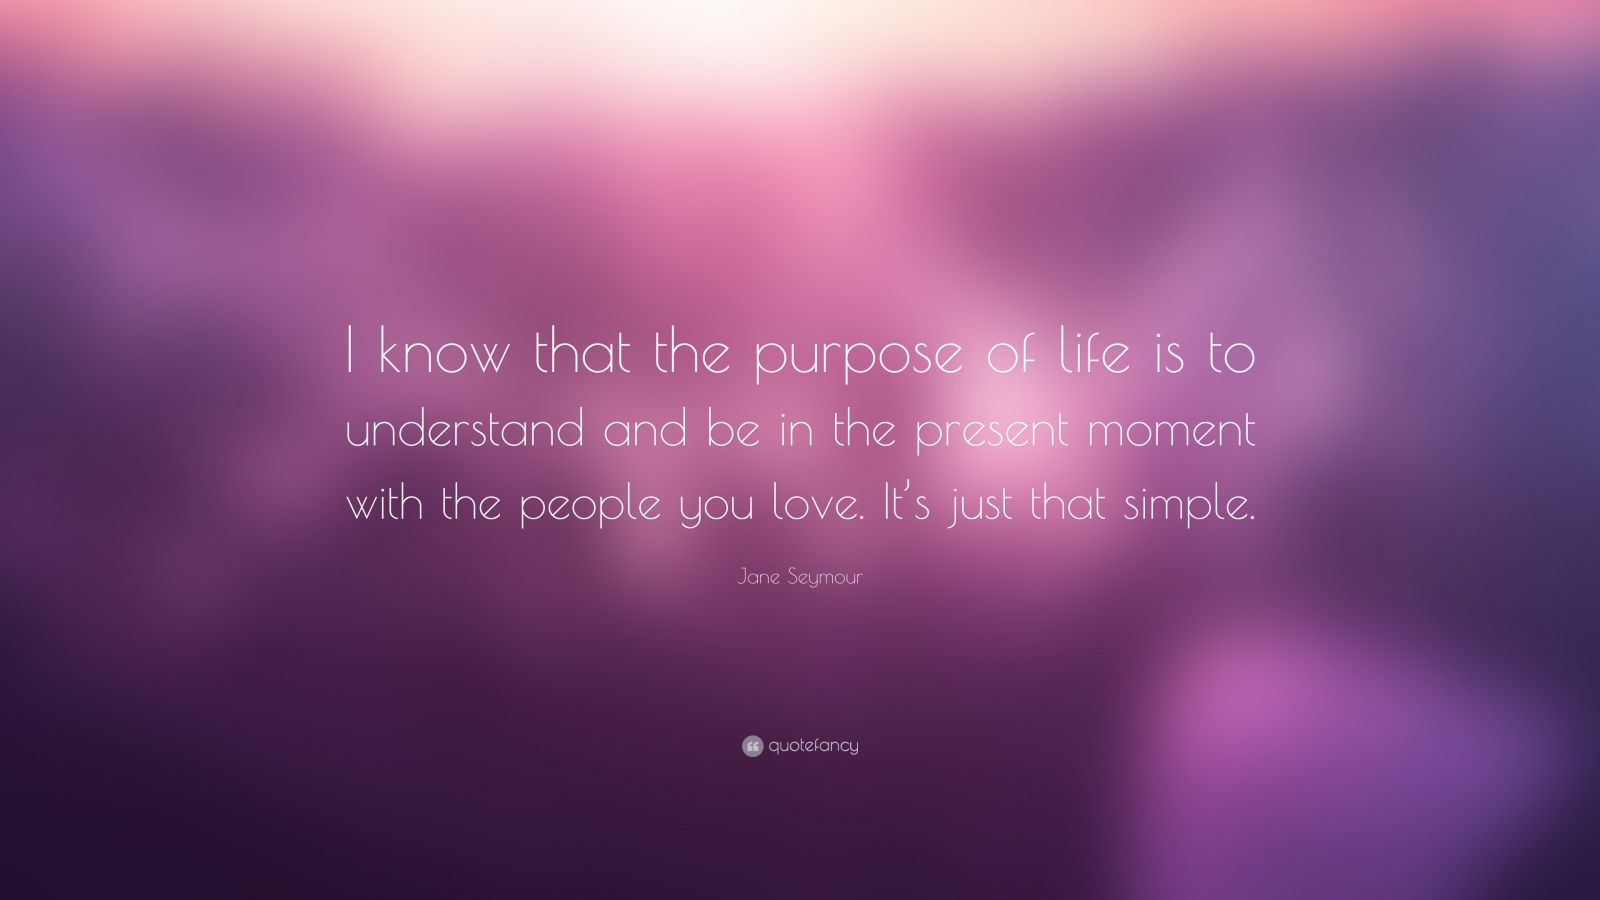 """Jane Seymour Quote: """"I know that the purpose of life is to understand and be in the present moment with the people you love. It's just that simple."""""""